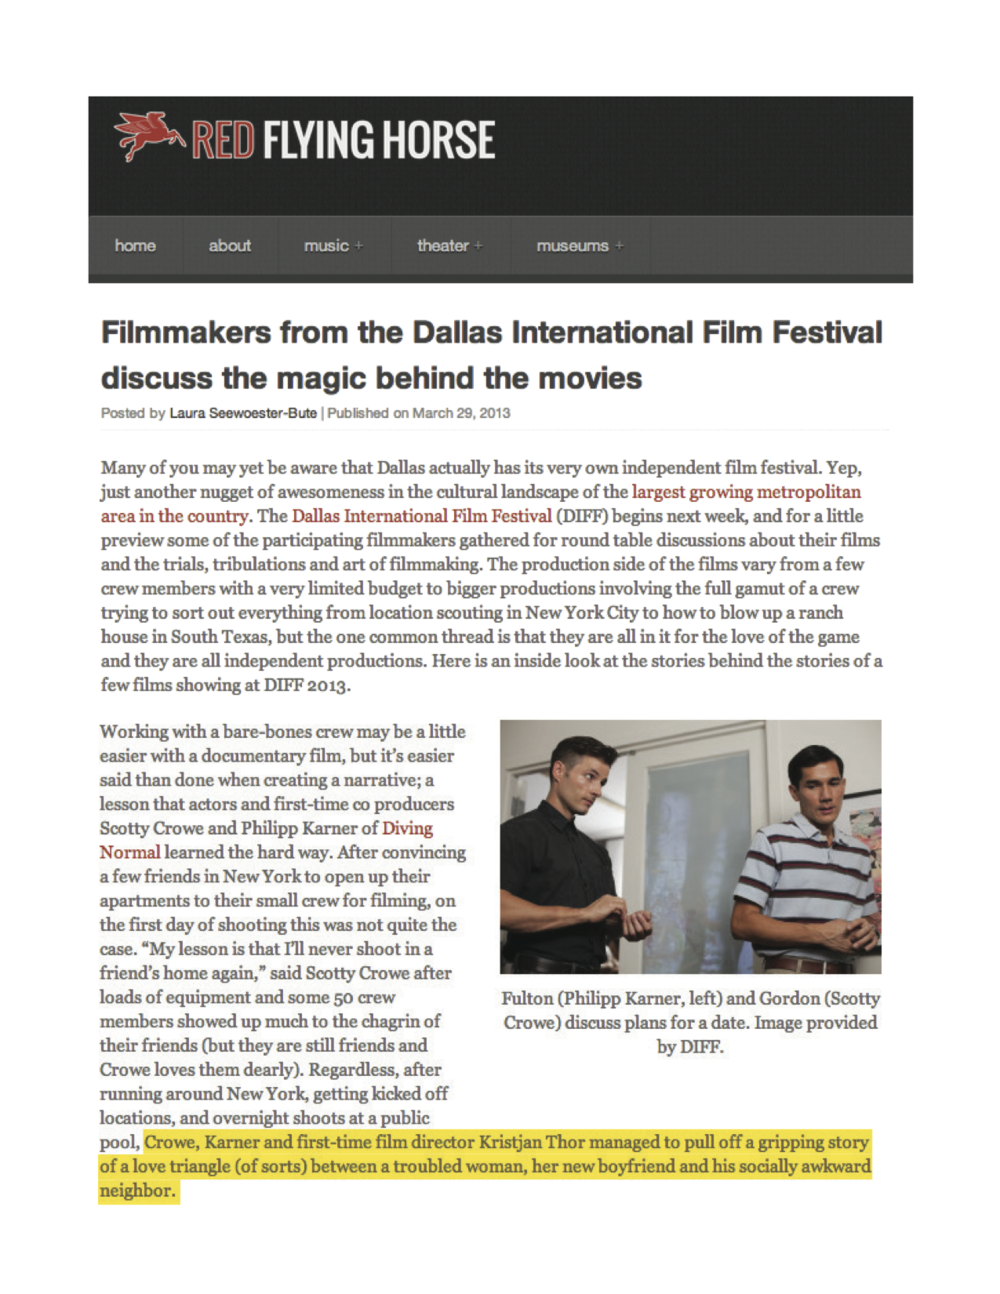 """Red Flying Horse: """"Filmmakers at the Dallas International Film Festival discuss the magic behind the scenes"""""""